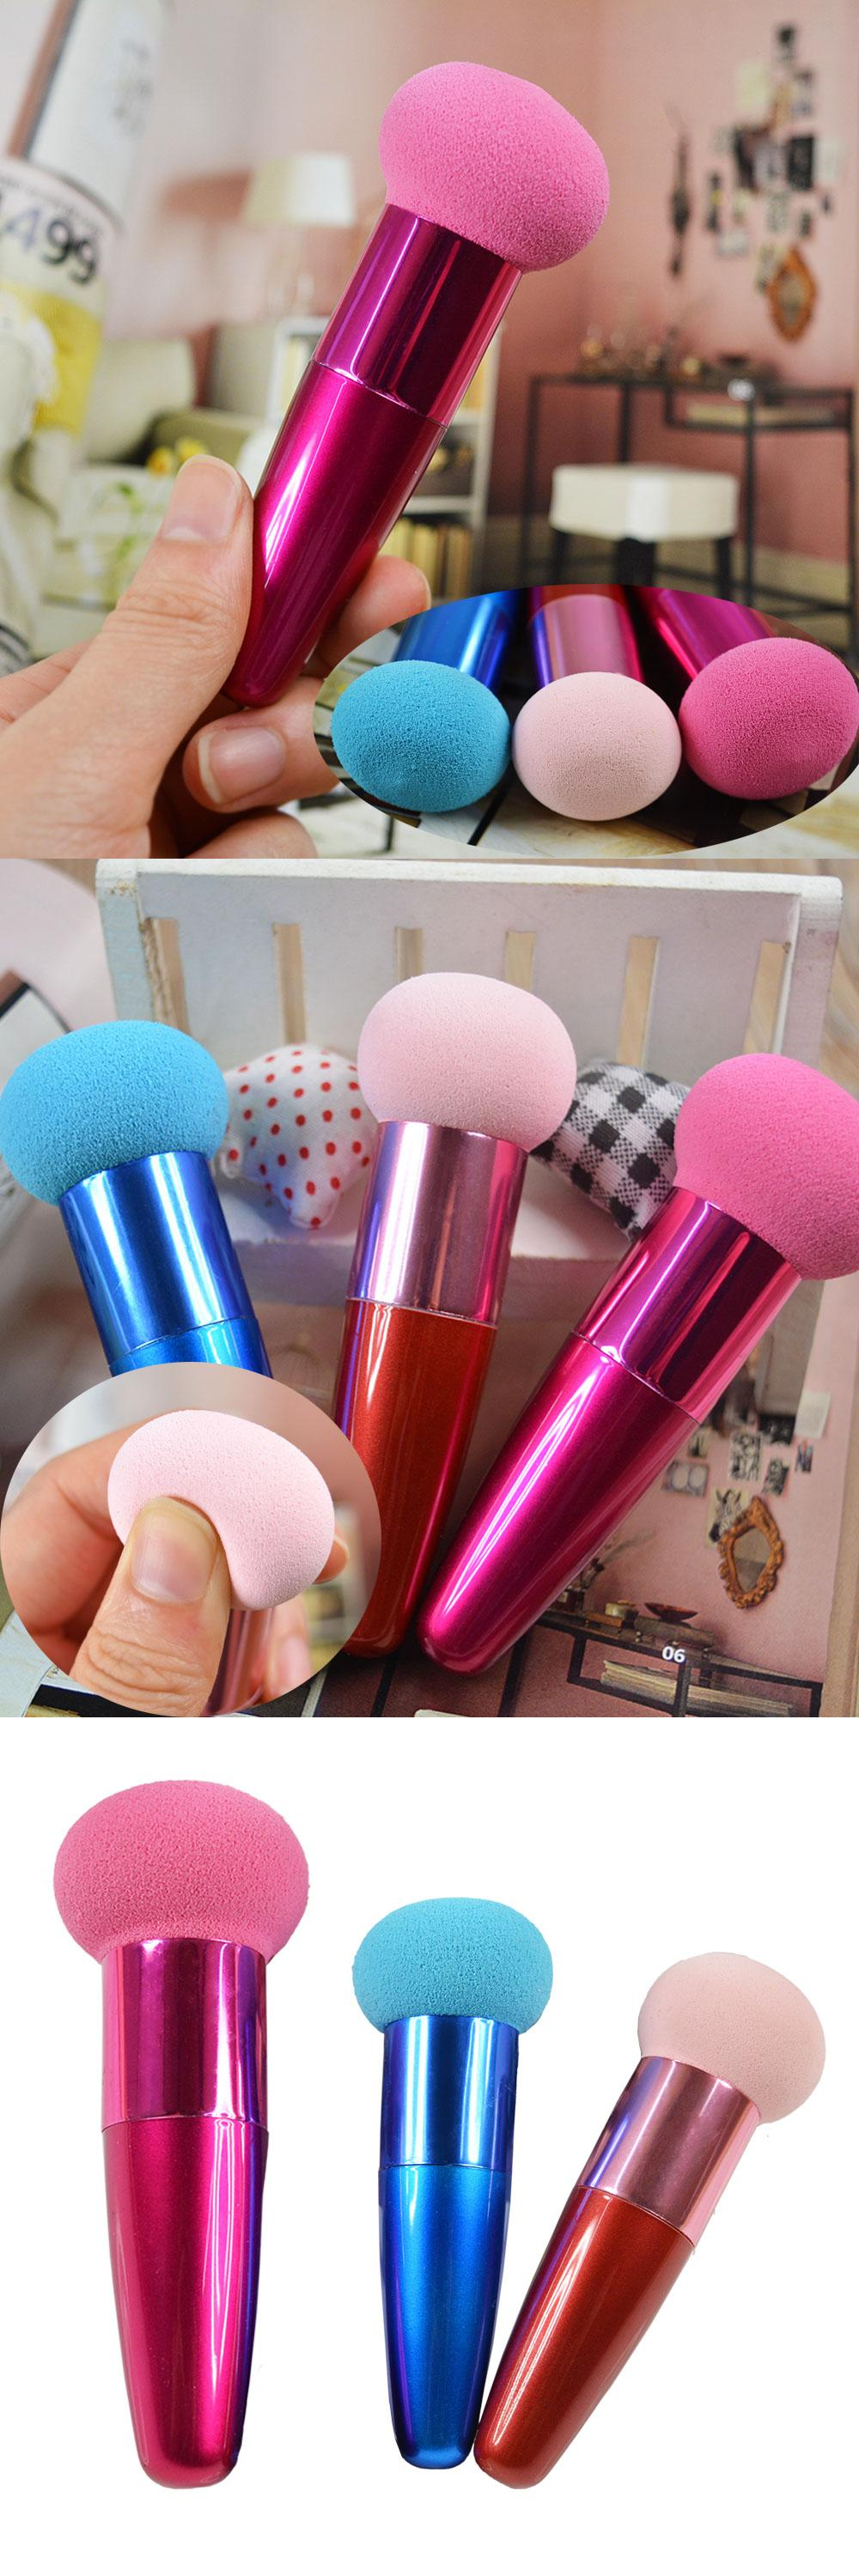 [Visit to Buy] 1 Pcs New Selling Beauty Cosmetic Makeup